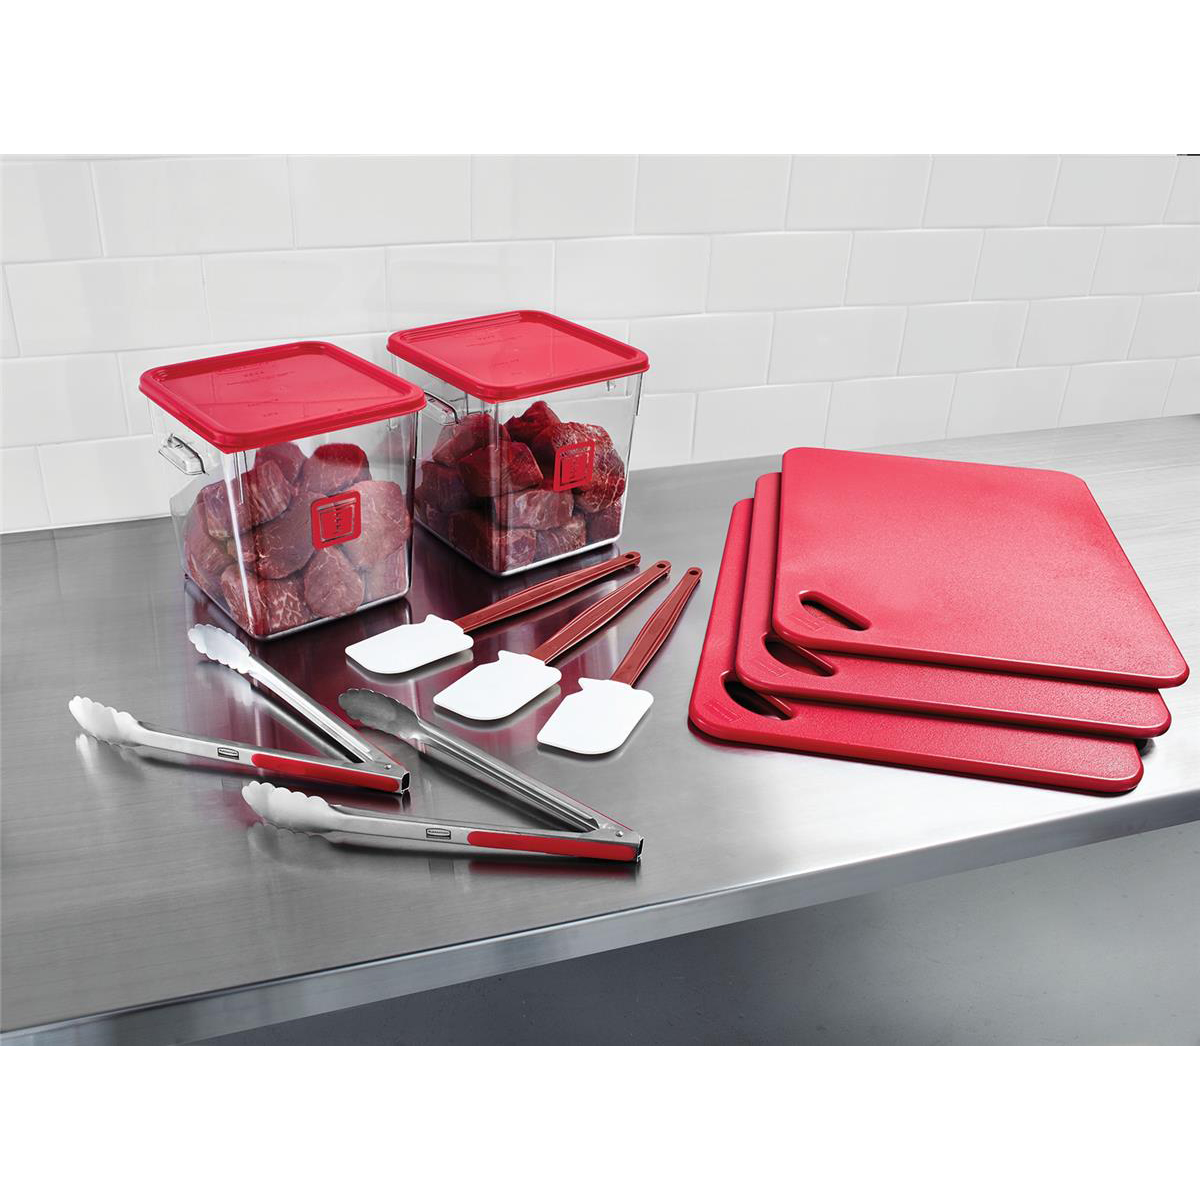 Rubbermaid Food Service Kit 12 Piece Colour-coded Red